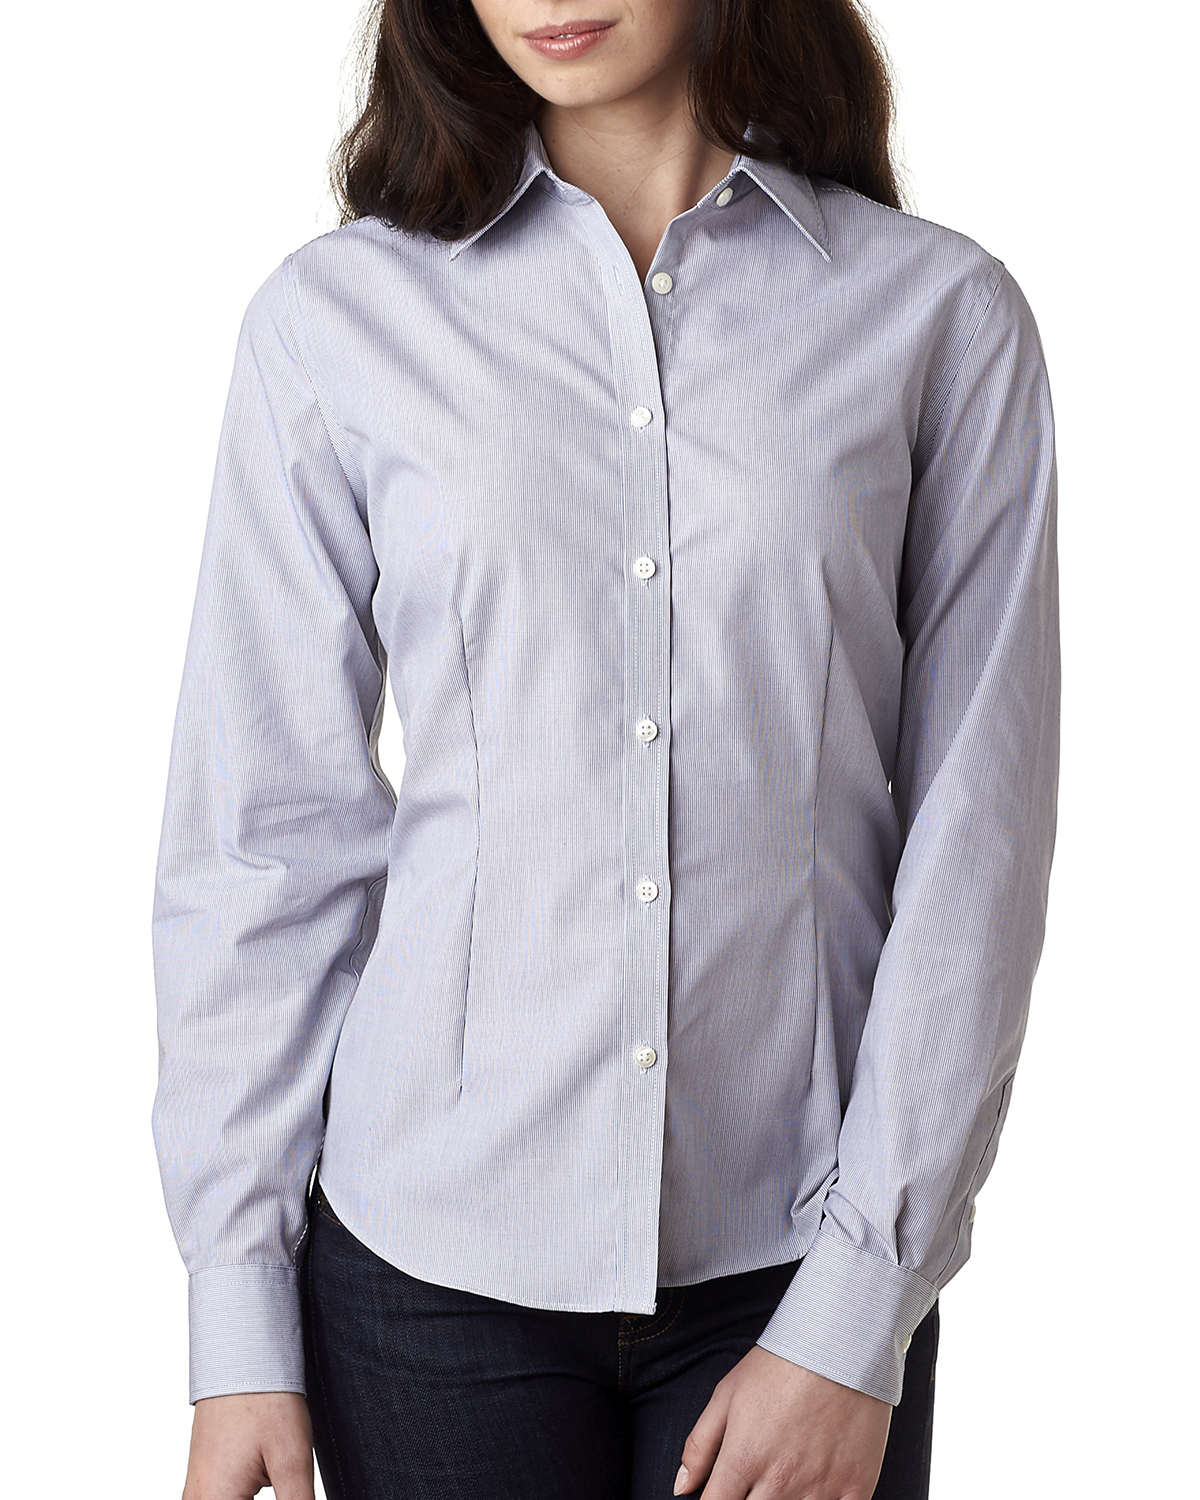 Van Heusen V0421 - Ladies' Long-Sleeve Non-Iron Feather ...